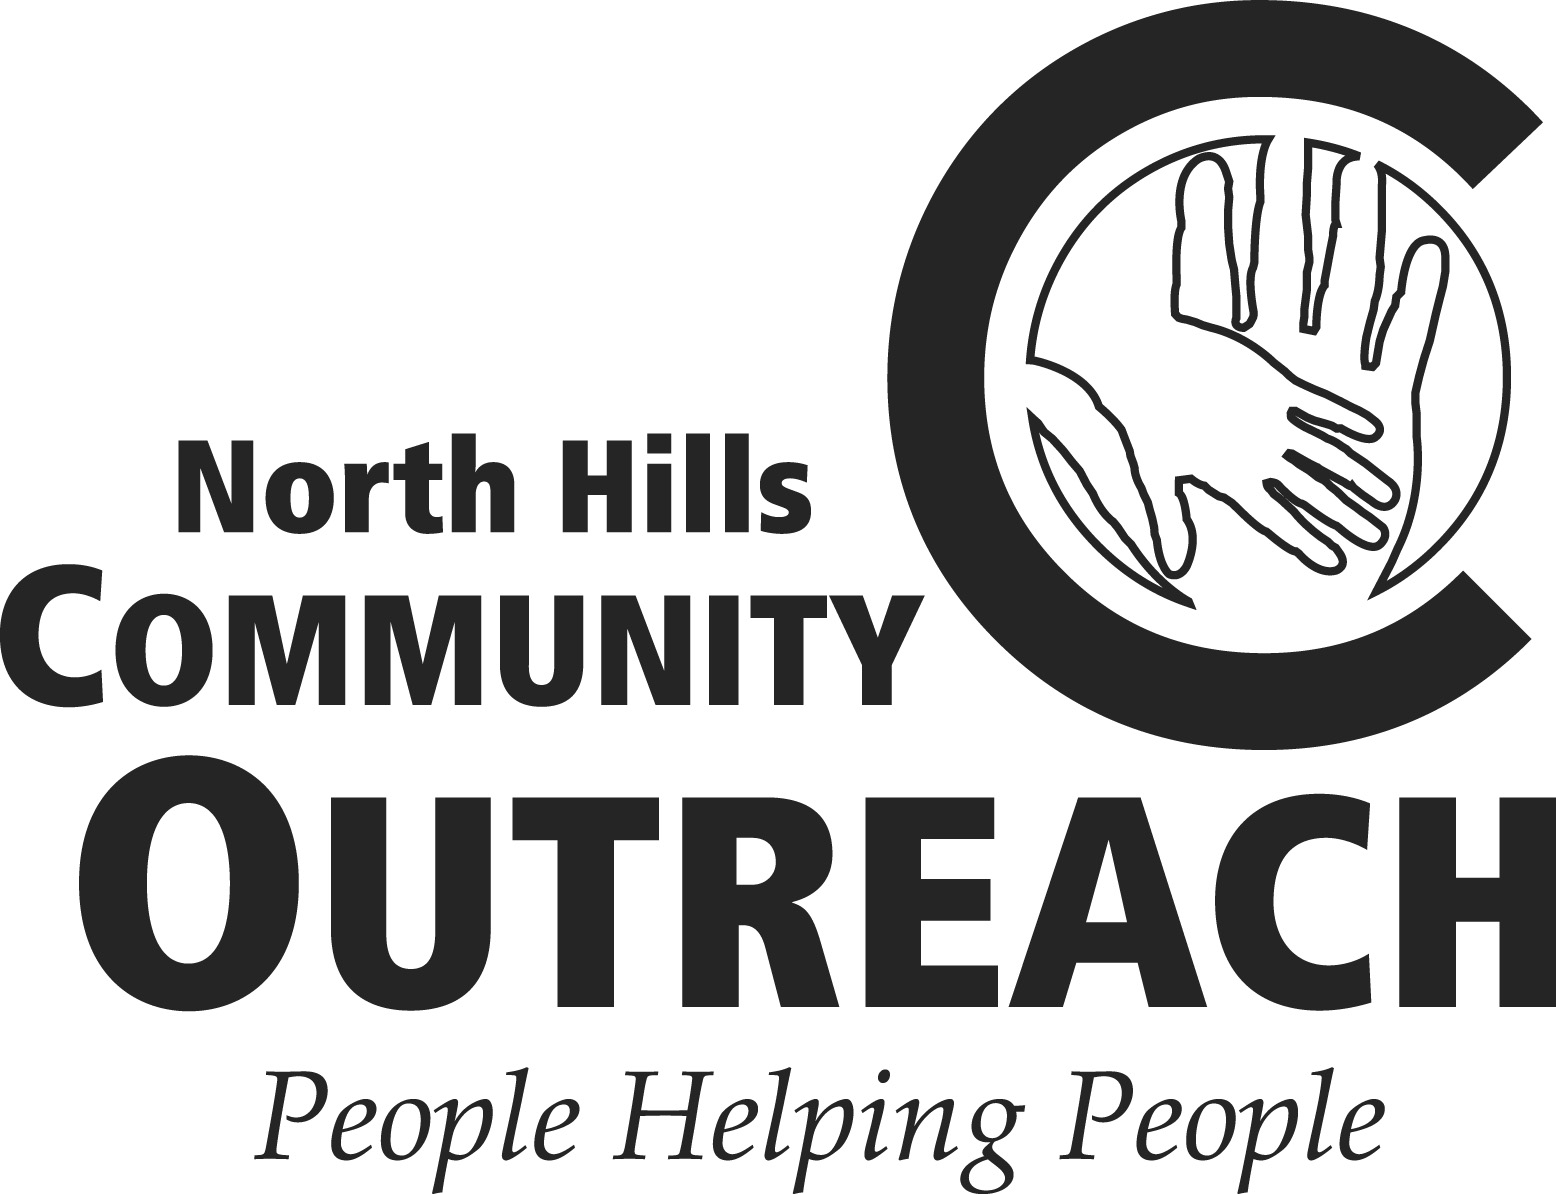 Please check out our website for more information about NHCO's numerous other programs that help families in need.